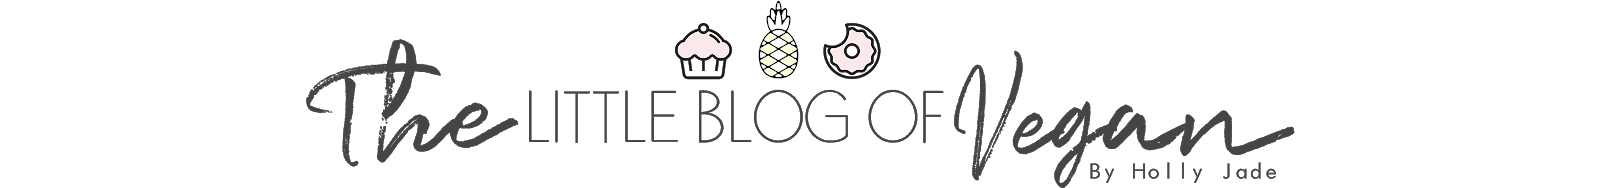 The Little Blog Of Vegan